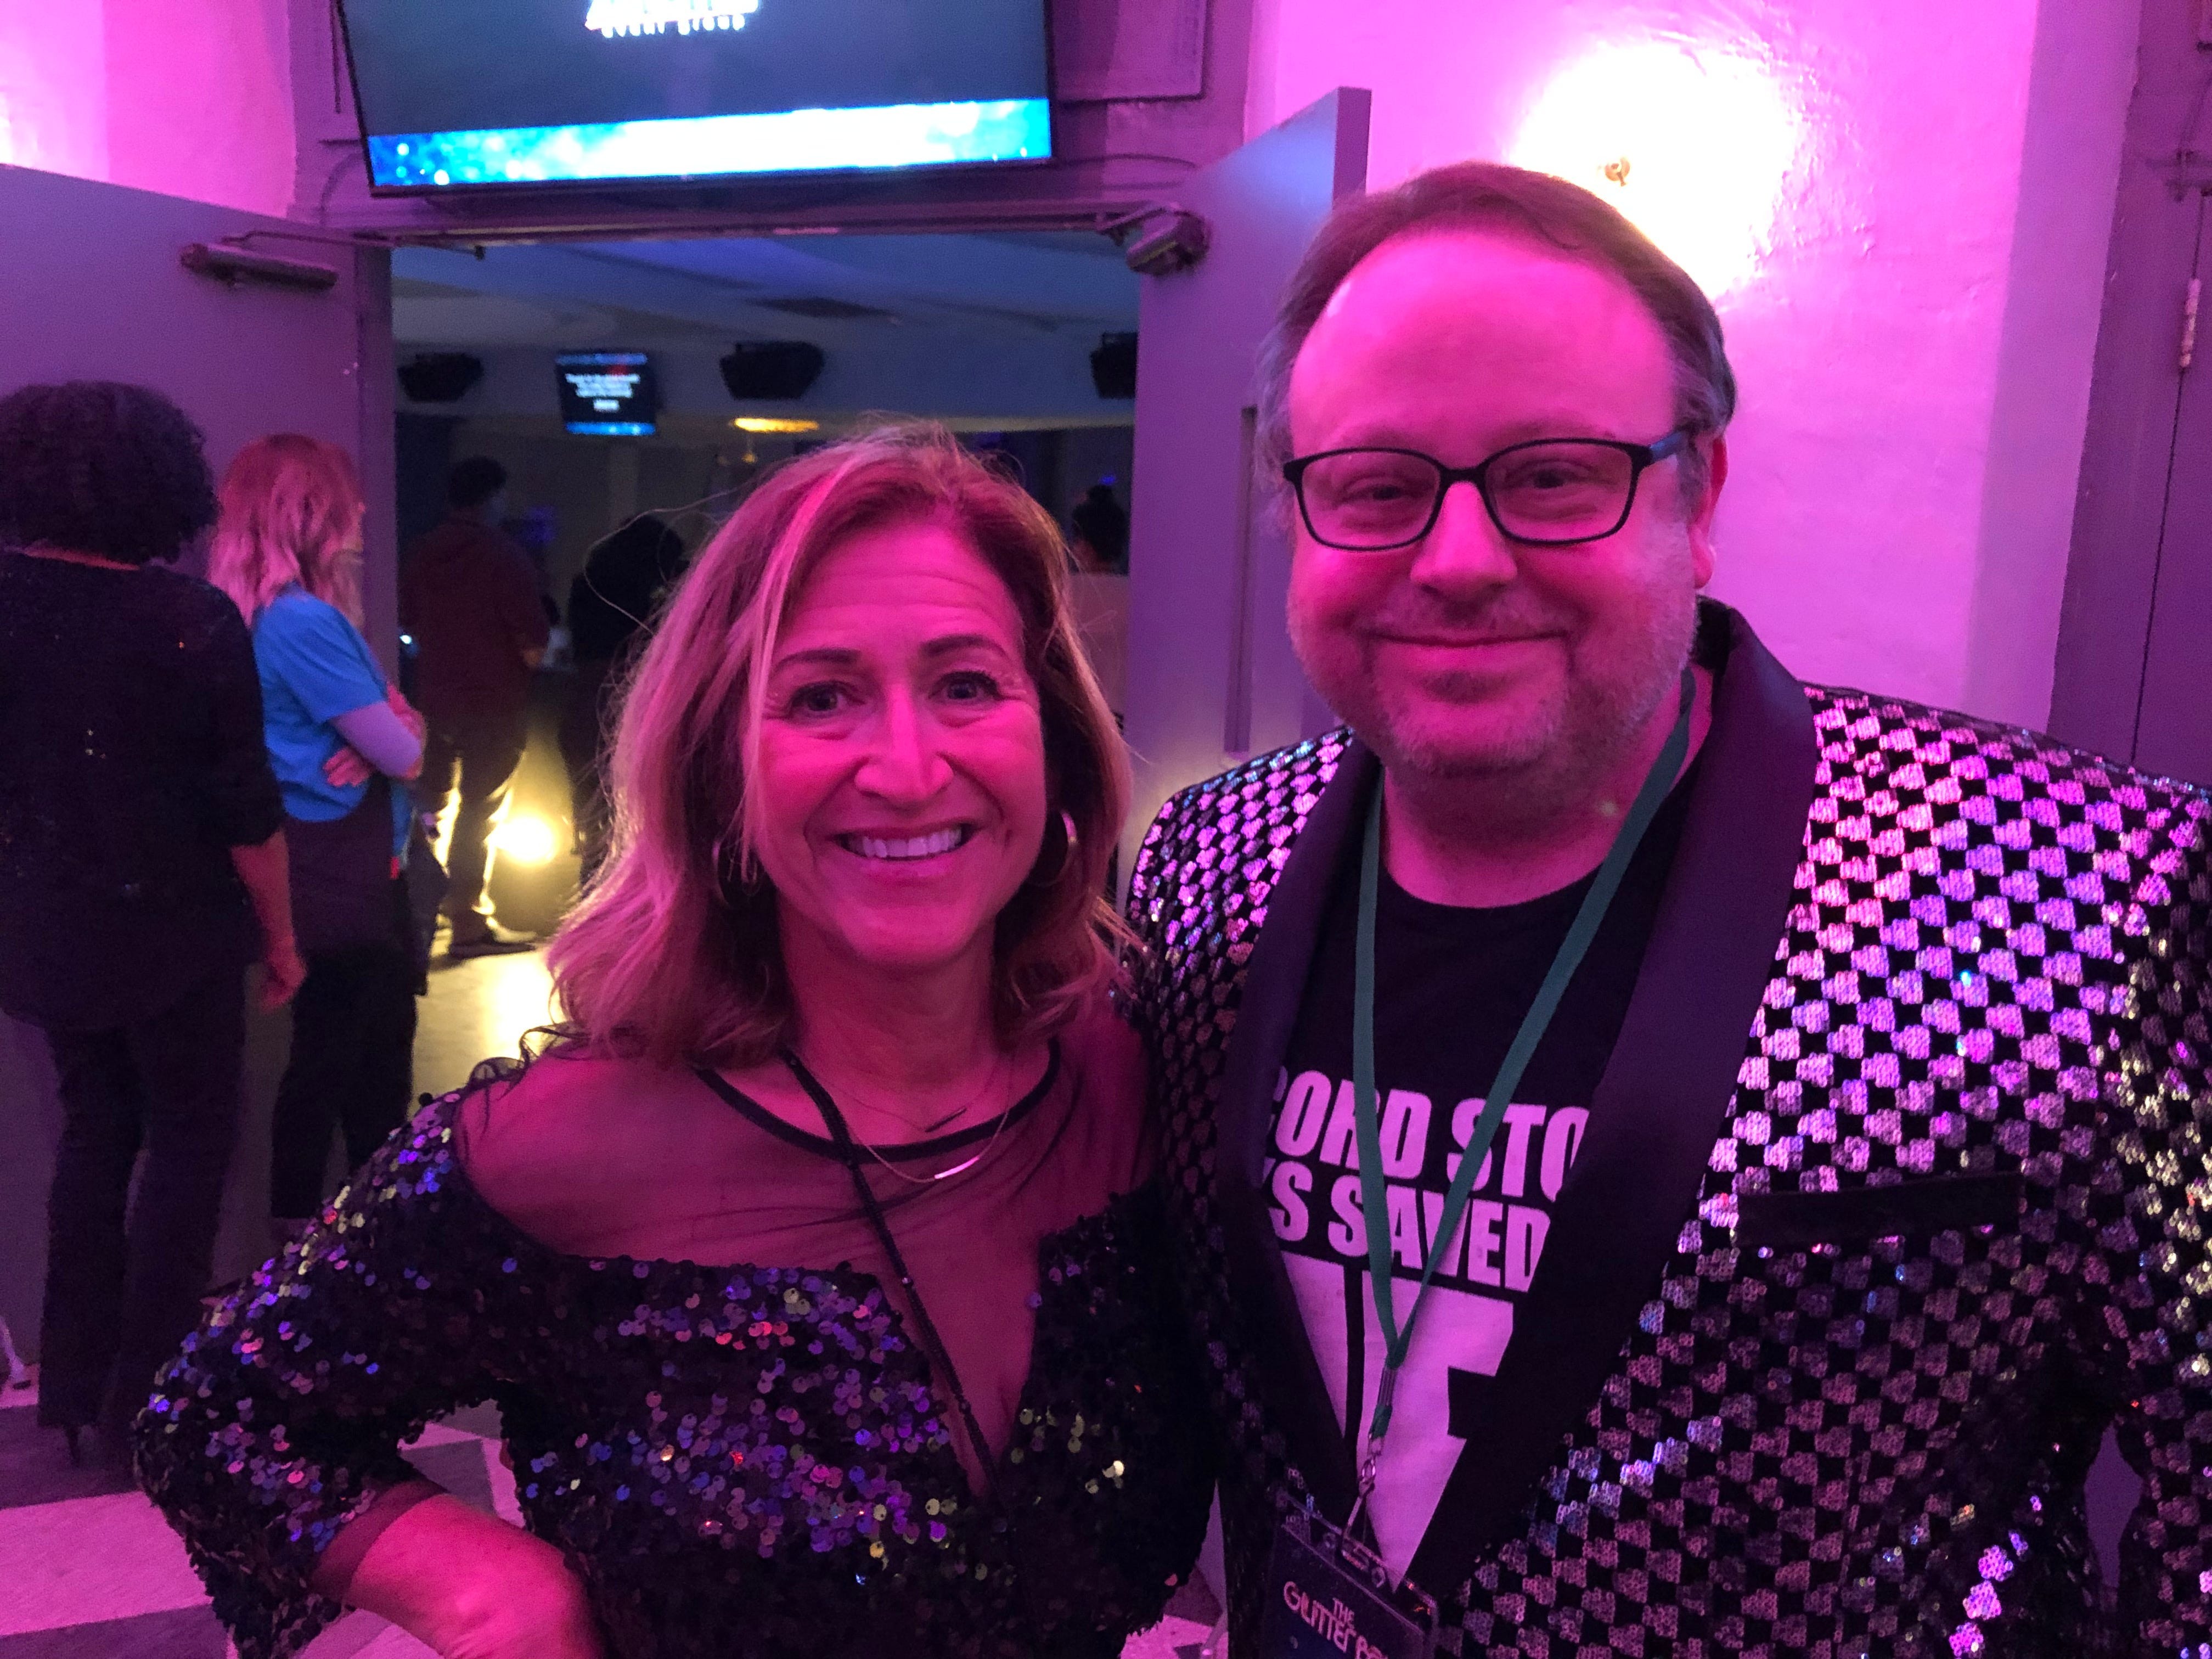 Tom Hall, executive director of the Montclair Film Festival, with novelist Laurie Lico Albanese at the Montclair Film Festival's Glitter Ball. March 2019.